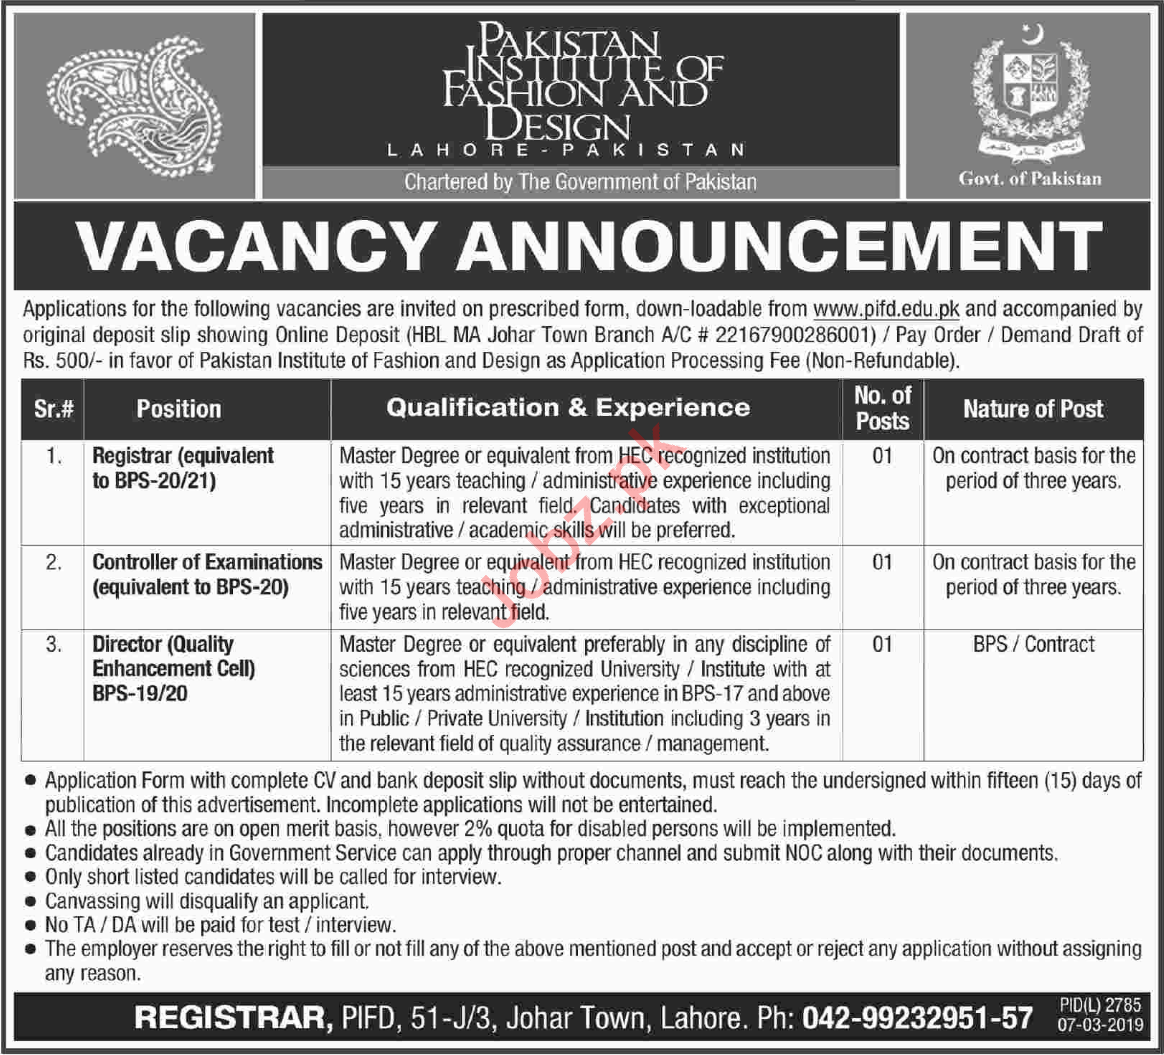 Pakistan Institute Of Fashion Design Jobs 2019 In Lahore 2020 Job Advertisement Pakistan